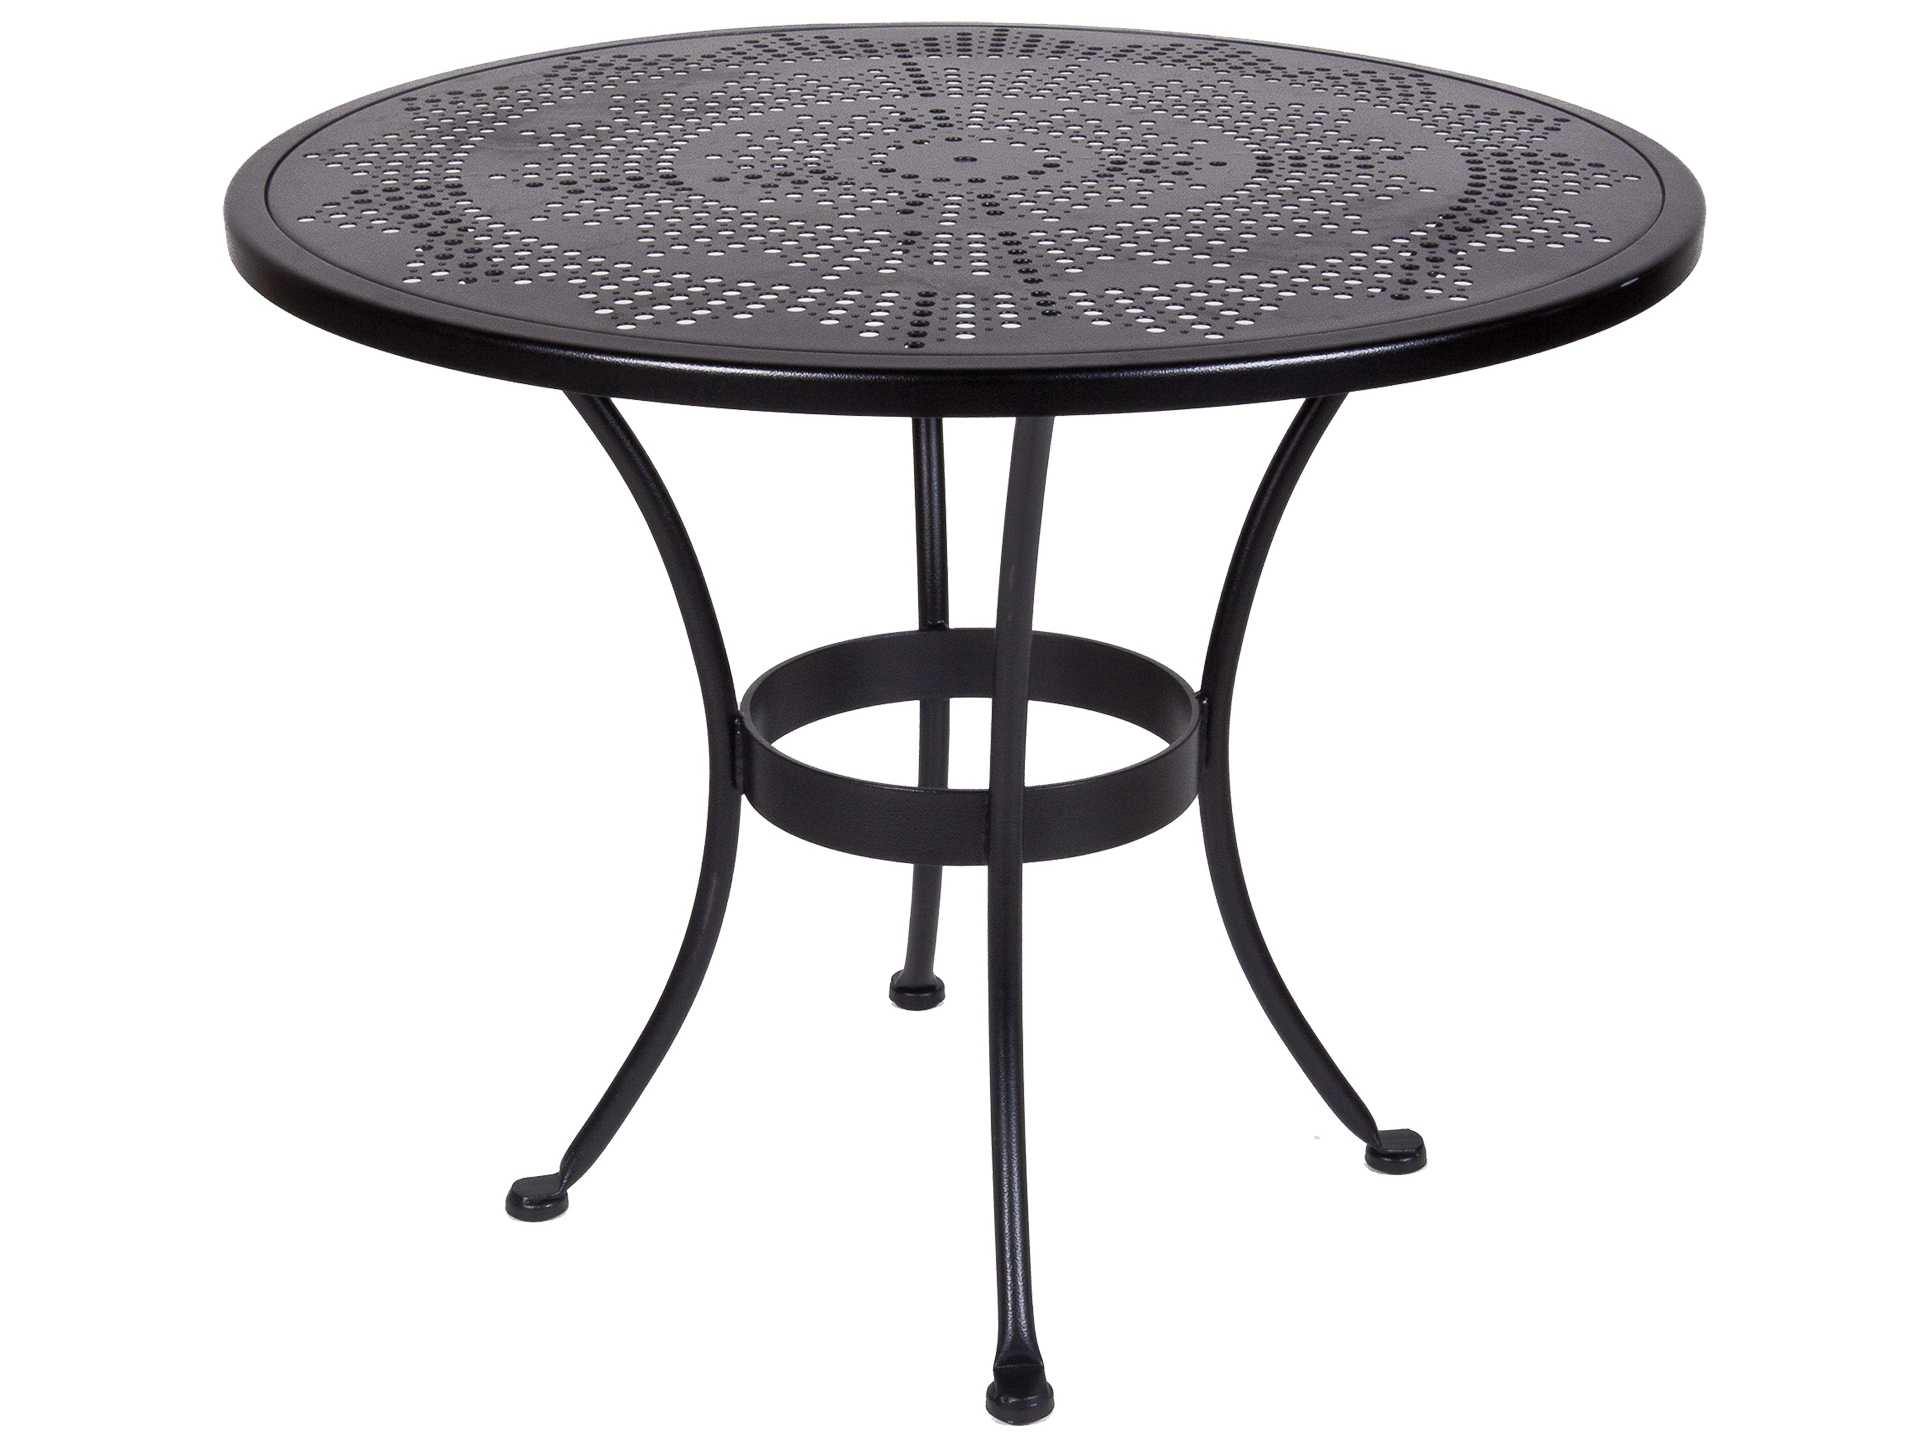 Bistro wrought iron stamped 36 round table with umbrella hole 36 su